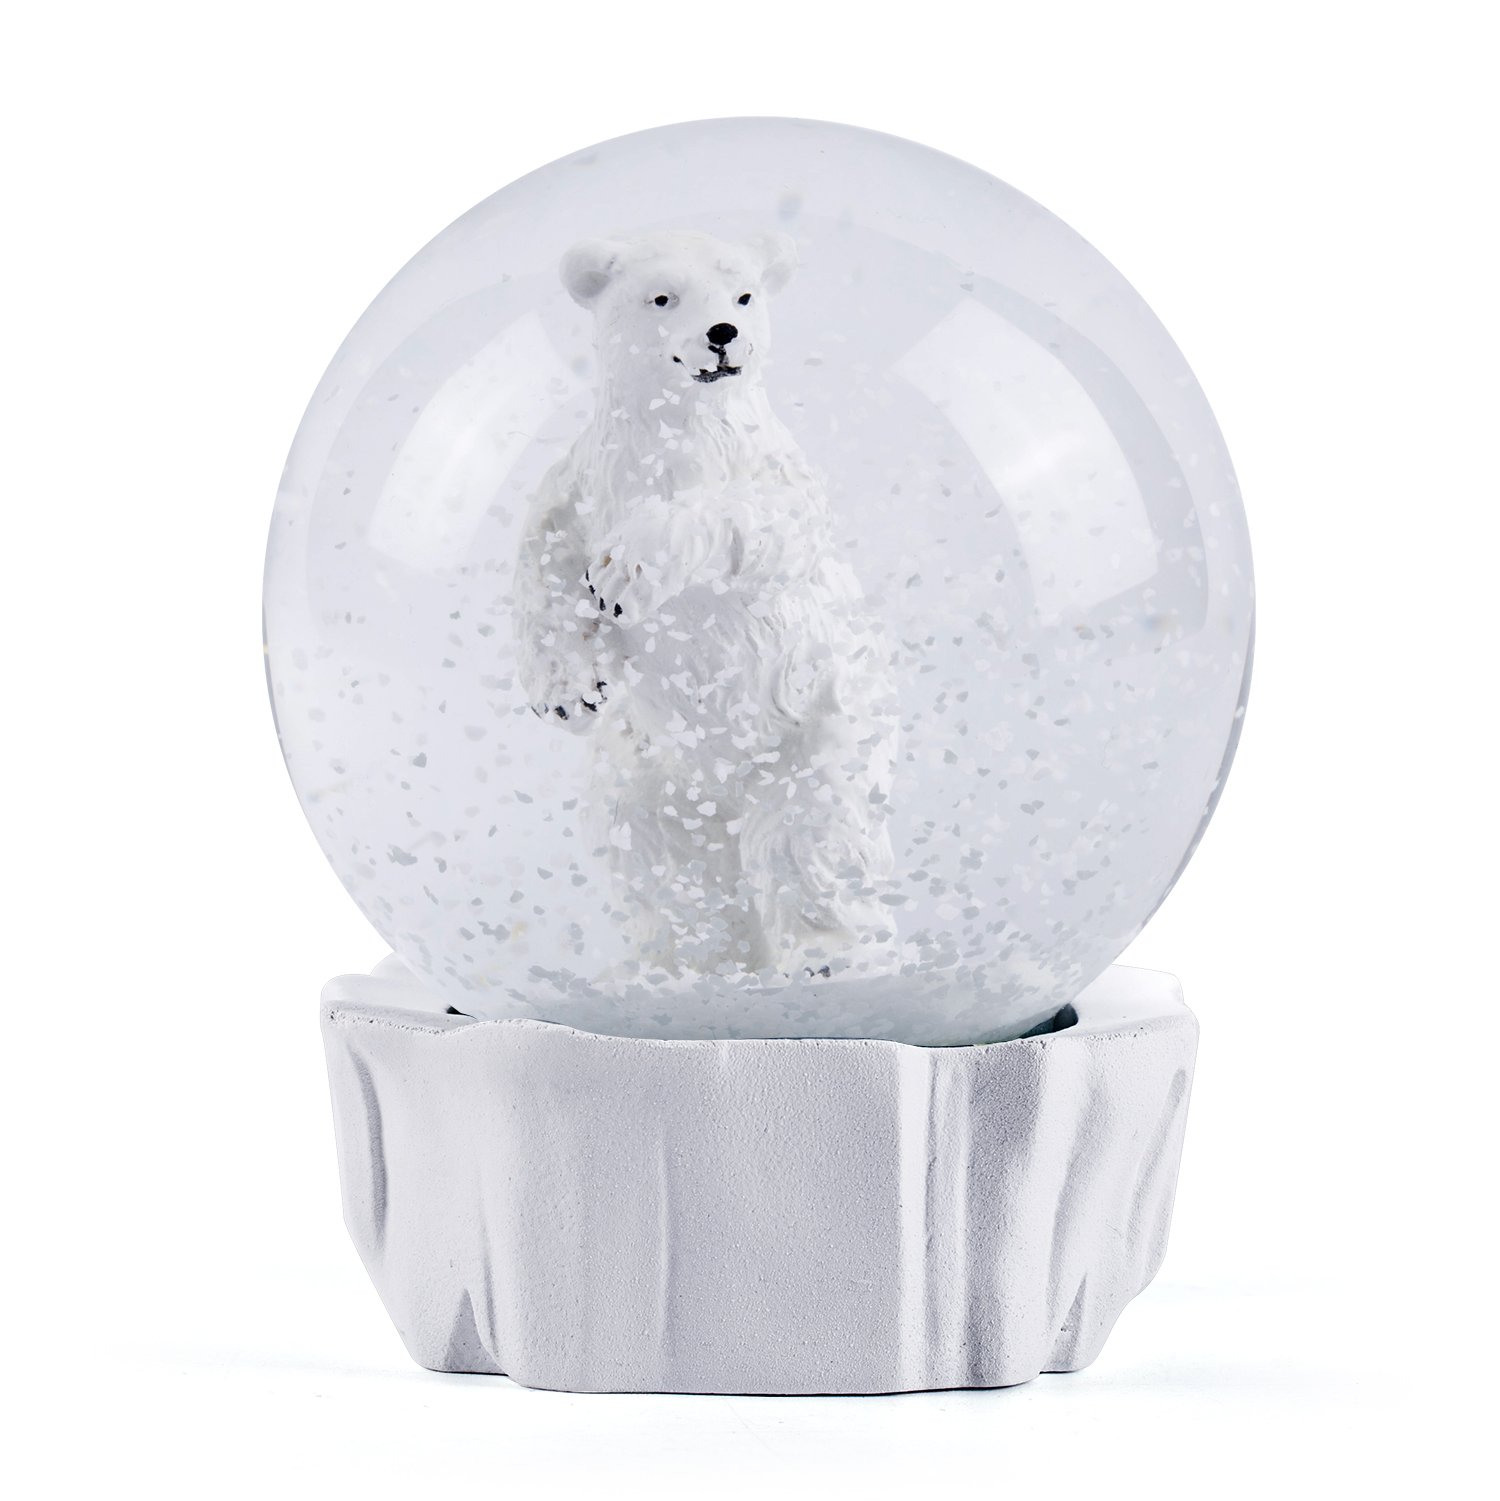 WOBAOS Snow Globe crafts- Sculptured Resin Water Ball - Christmas Valentine's day birthday holiday new year's gift (Diameter 80mm, White) by WOBAOS